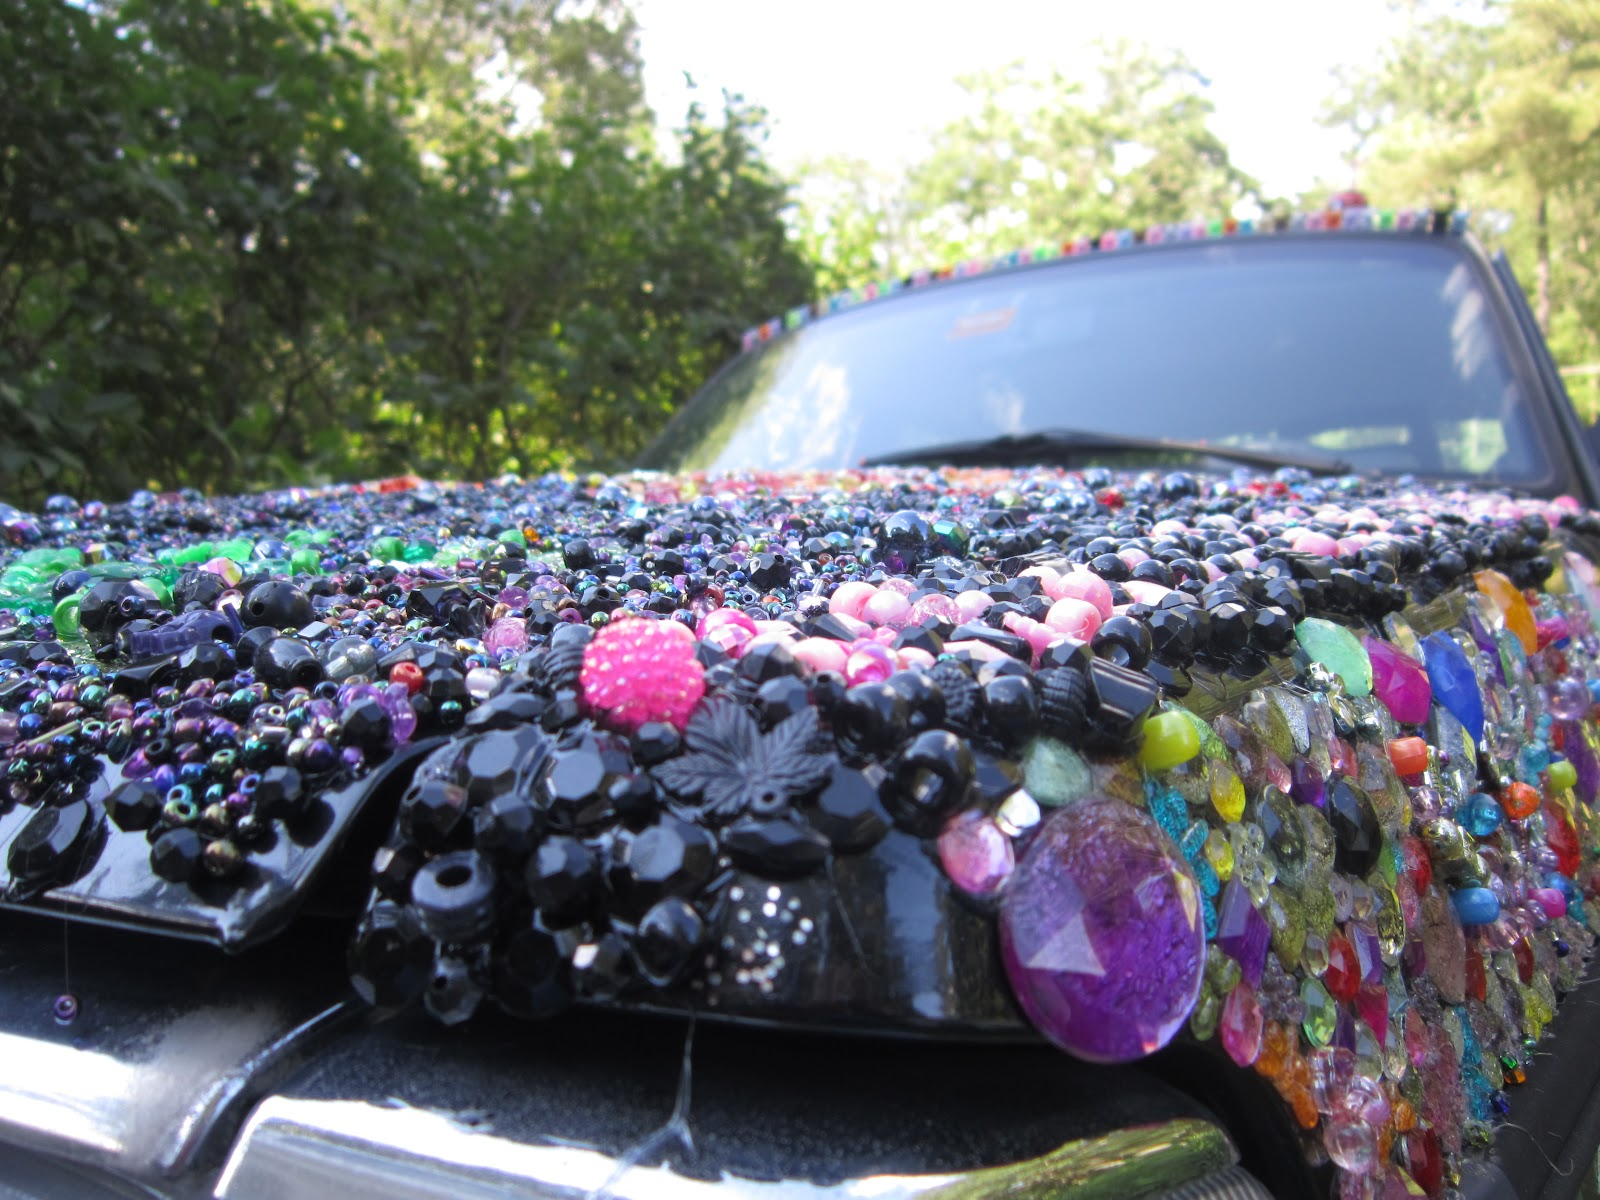 The Dazzling Razzberry aka The Autism Awareness Car